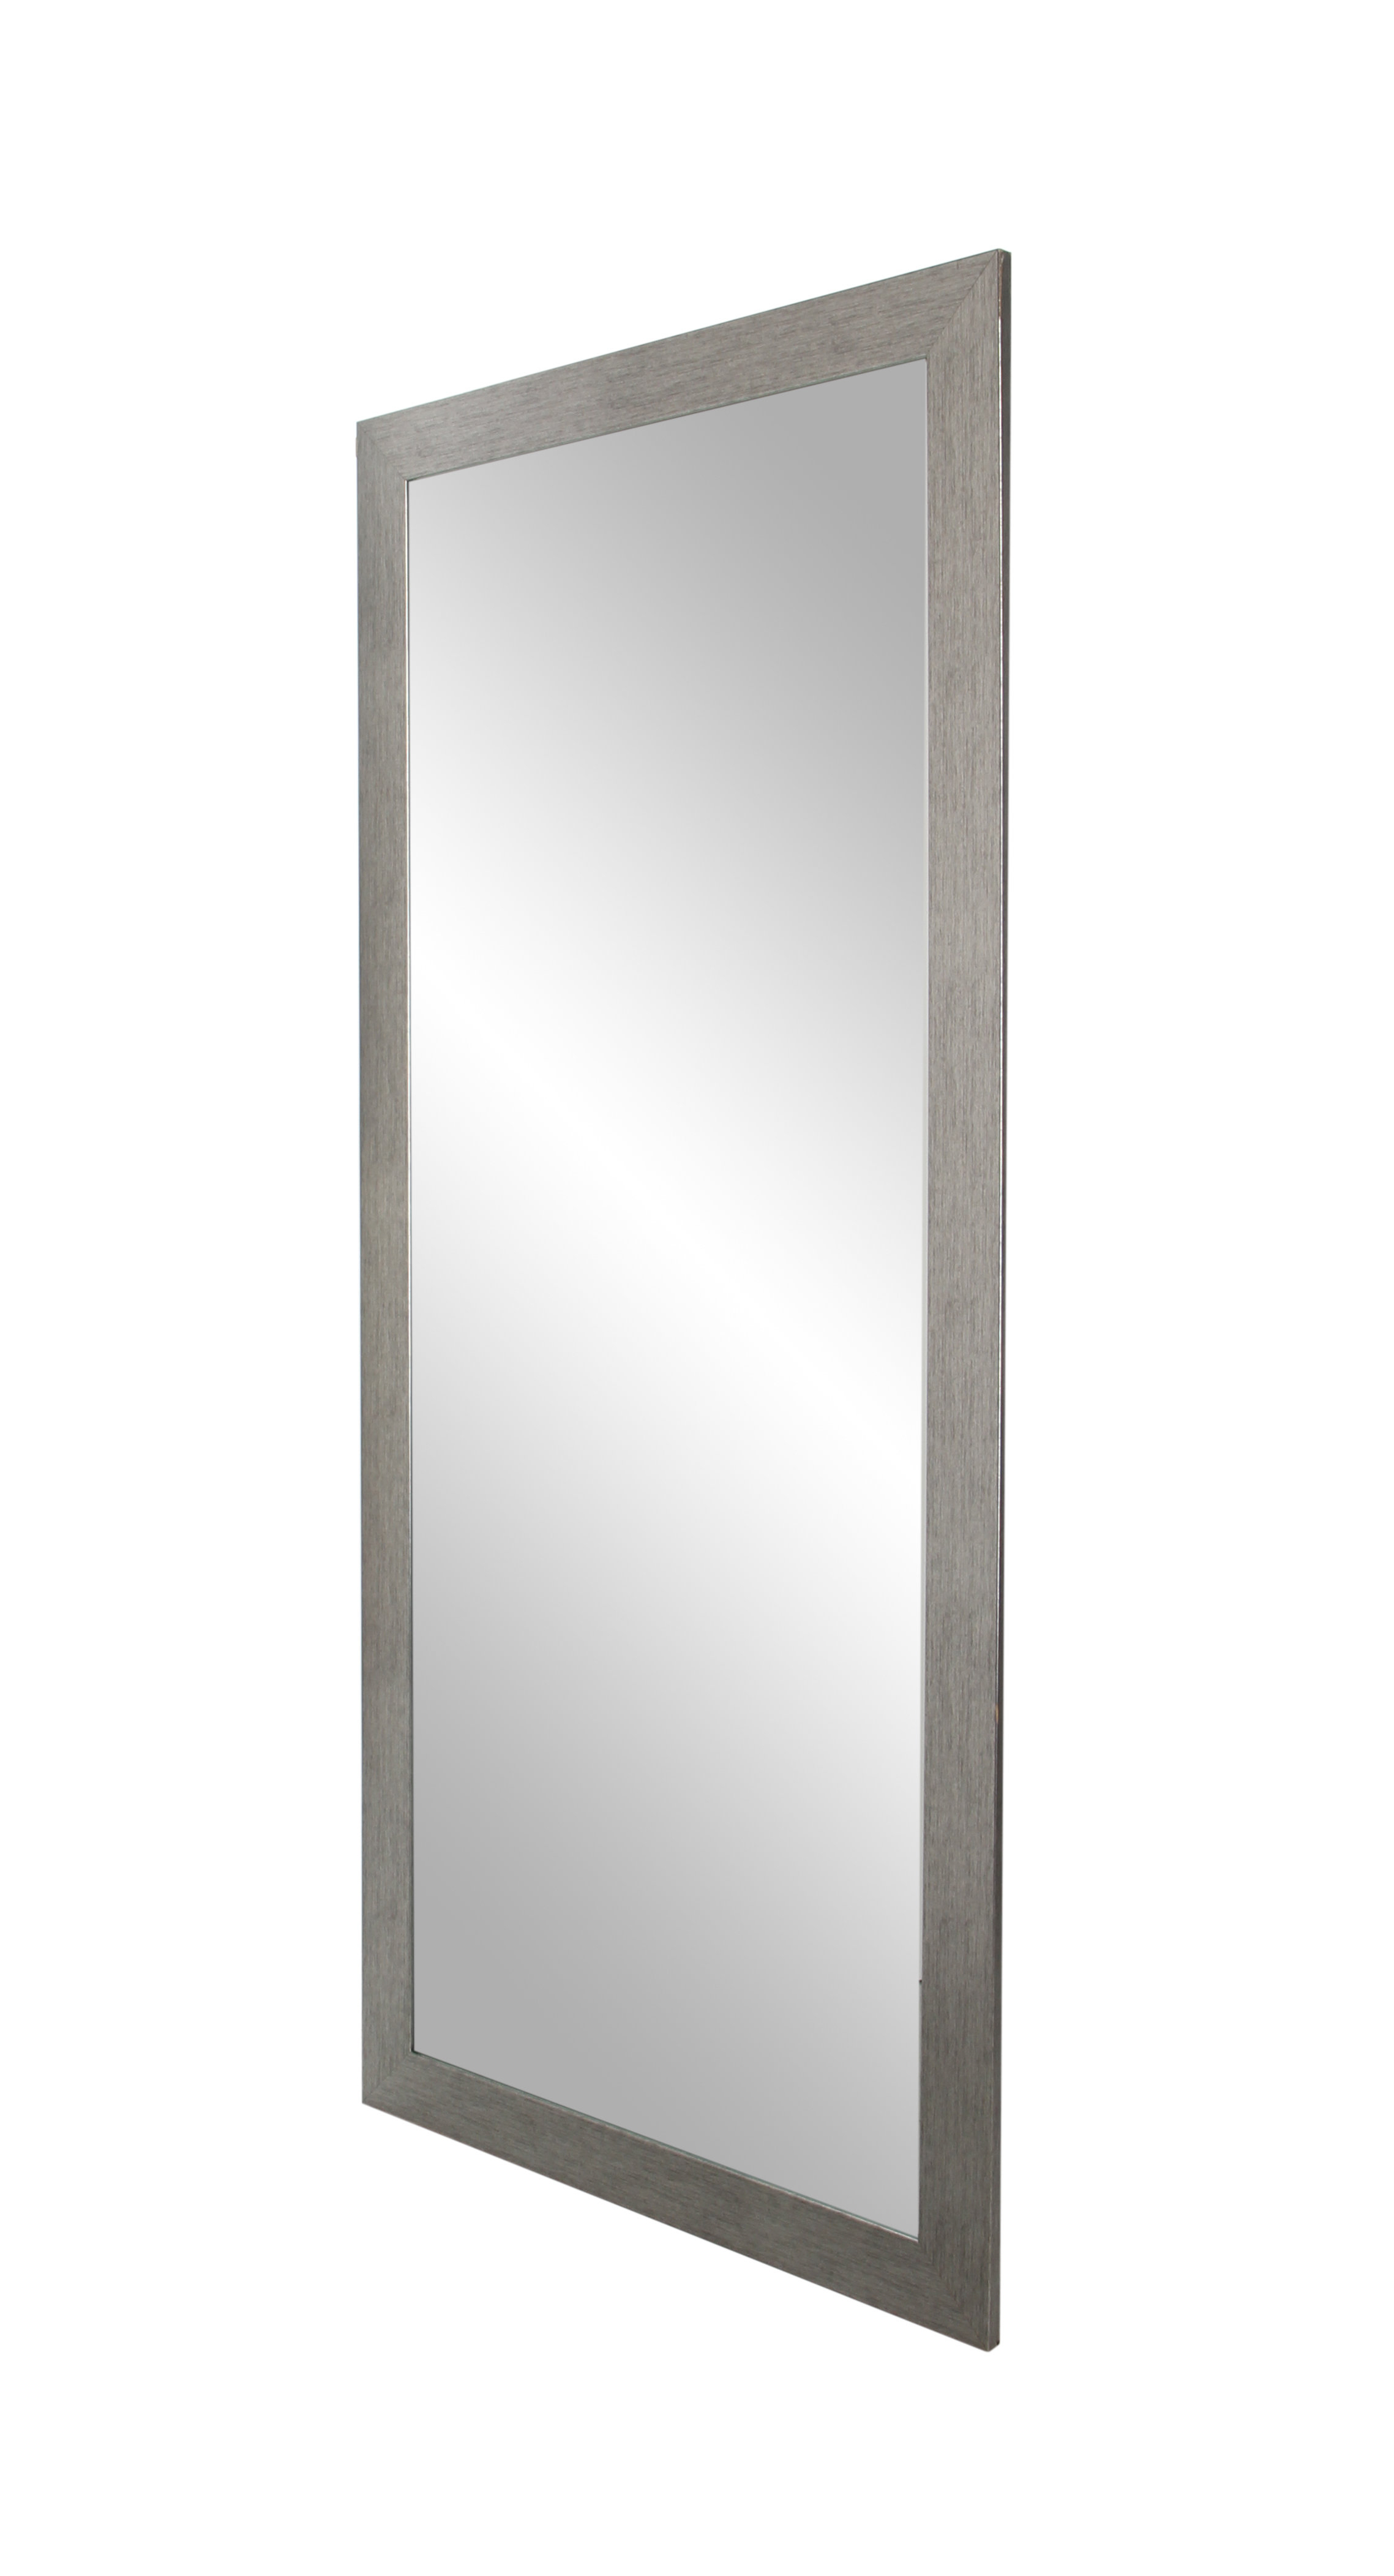 Jameson Modern & Contemporary Full Length Mirror Intended For Dalessio Wide Tall Full Length Mirrors (Photo 15 of 20)